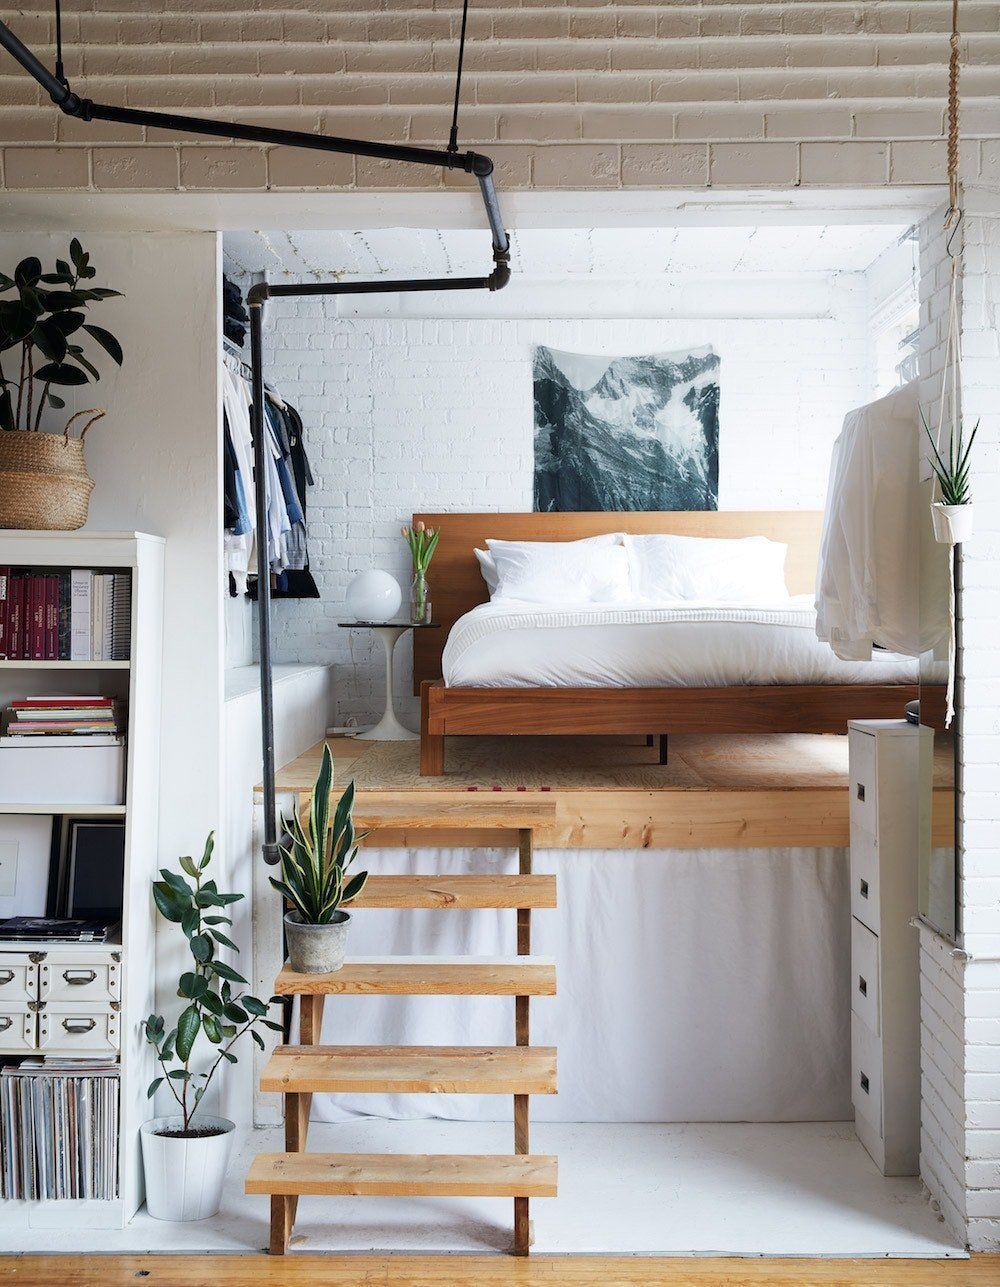 Loft bed ideas for small spaces  The Half Loft is a Genius Solution For Your Small Space  Bed